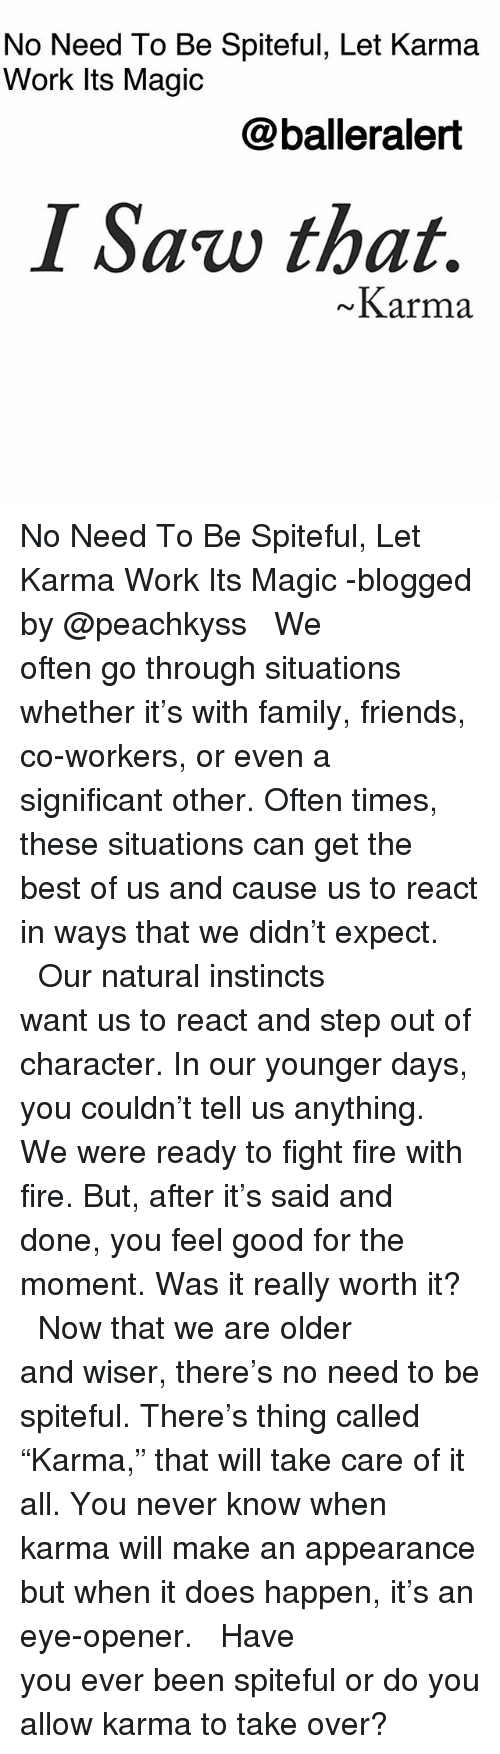 """Family, Fire, and Friends: No Need To Be Spiteful, Let Karma  Work Its Magic  @balleralert  I Saw that.  Karma No Need To Be Spiteful, Let Karma Work Its Magic -blogged by @peachkyss ⠀⠀⠀⠀⠀⠀⠀ ⠀⠀⠀⠀⠀⠀⠀ We often go through situations whether it's with family, friends, co-workers, or even a significant other. Often times, these situations can get the best of us and cause us to react in ways that we didn't expect. ⠀⠀⠀⠀⠀⠀⠀ ⠀⠀⠀⠀⠀⠀⠀ Our natural instincts want us to react and step out of character. In our younger days, you couldn't tell us anything. We were ready to fight fire with fire. But, after it's said and done, you feel good for the moment. Was it really worth it? ⠀⠀⠀⠀⠀⠀⠀ ⠀⠀⠀⠀⠀⠀⠀ Now that we are older and wiser, there's no need to be spiteful. There's thing called """"Karma,"""" that will take care of it all. You never know when karma will make an appearance but when it does happen, it's an eye-opener. ⠀⠀⠀⠀⠀⠀⠀ ⠀⠀⠀⠀⠀⠀⠀ Have you ever been spiteful or do you allow karma to take over?"""